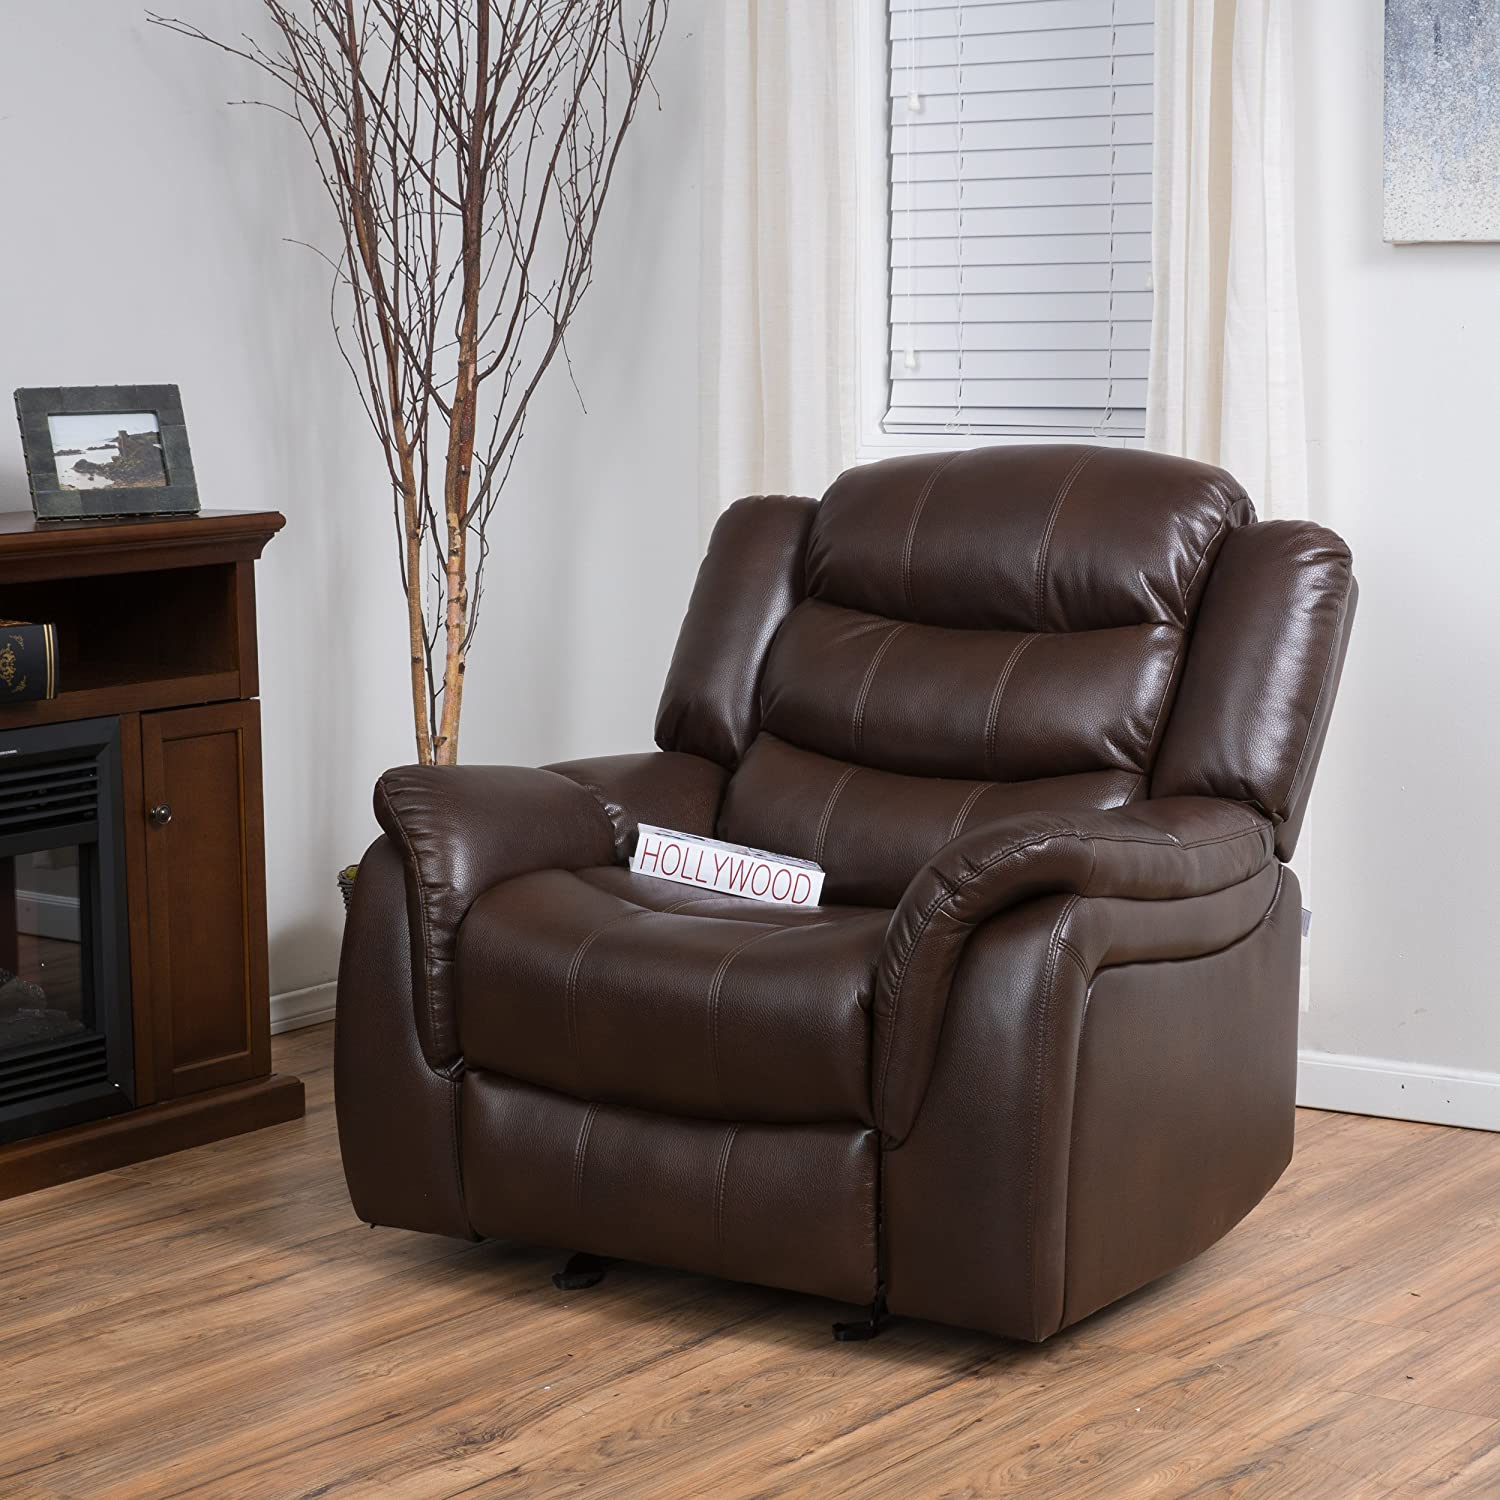 Amazon Merit Brown PU Leather Glider Recliner Club Chair